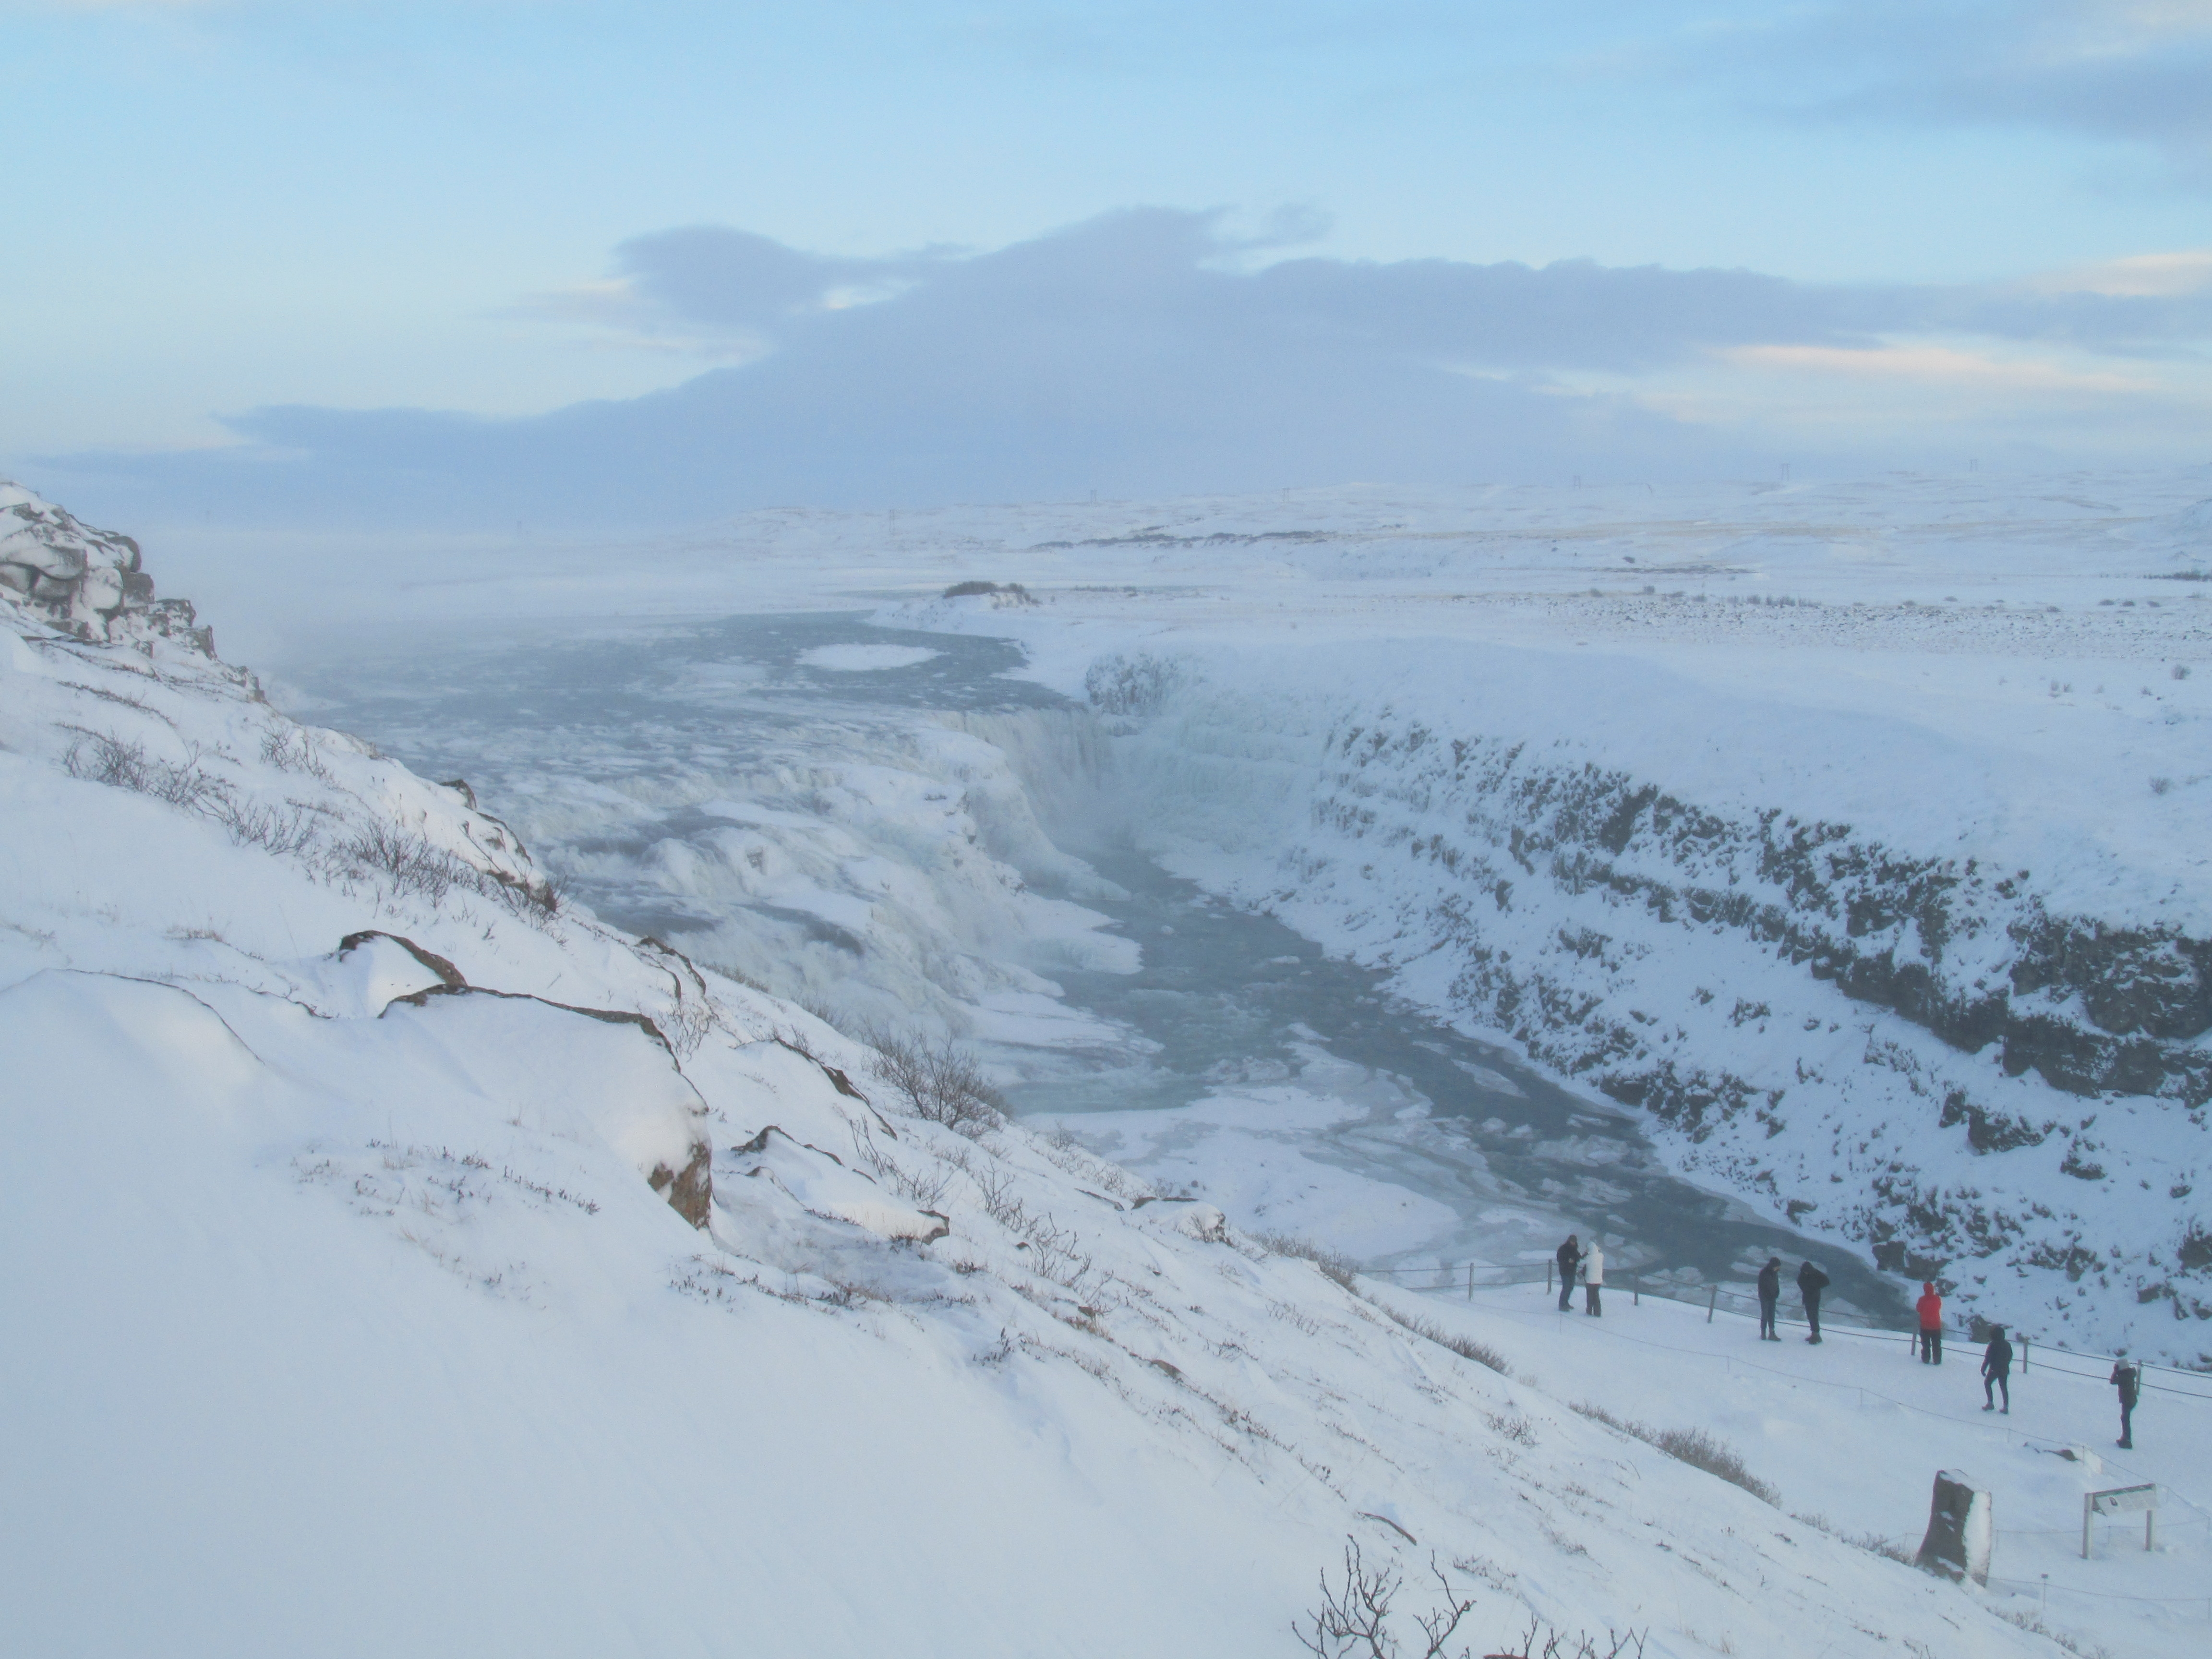 Don't let the weather deter you; dress appropriately when visiting Gullfoss waterfall in Iceland. Photo credit: M. Ciavardini